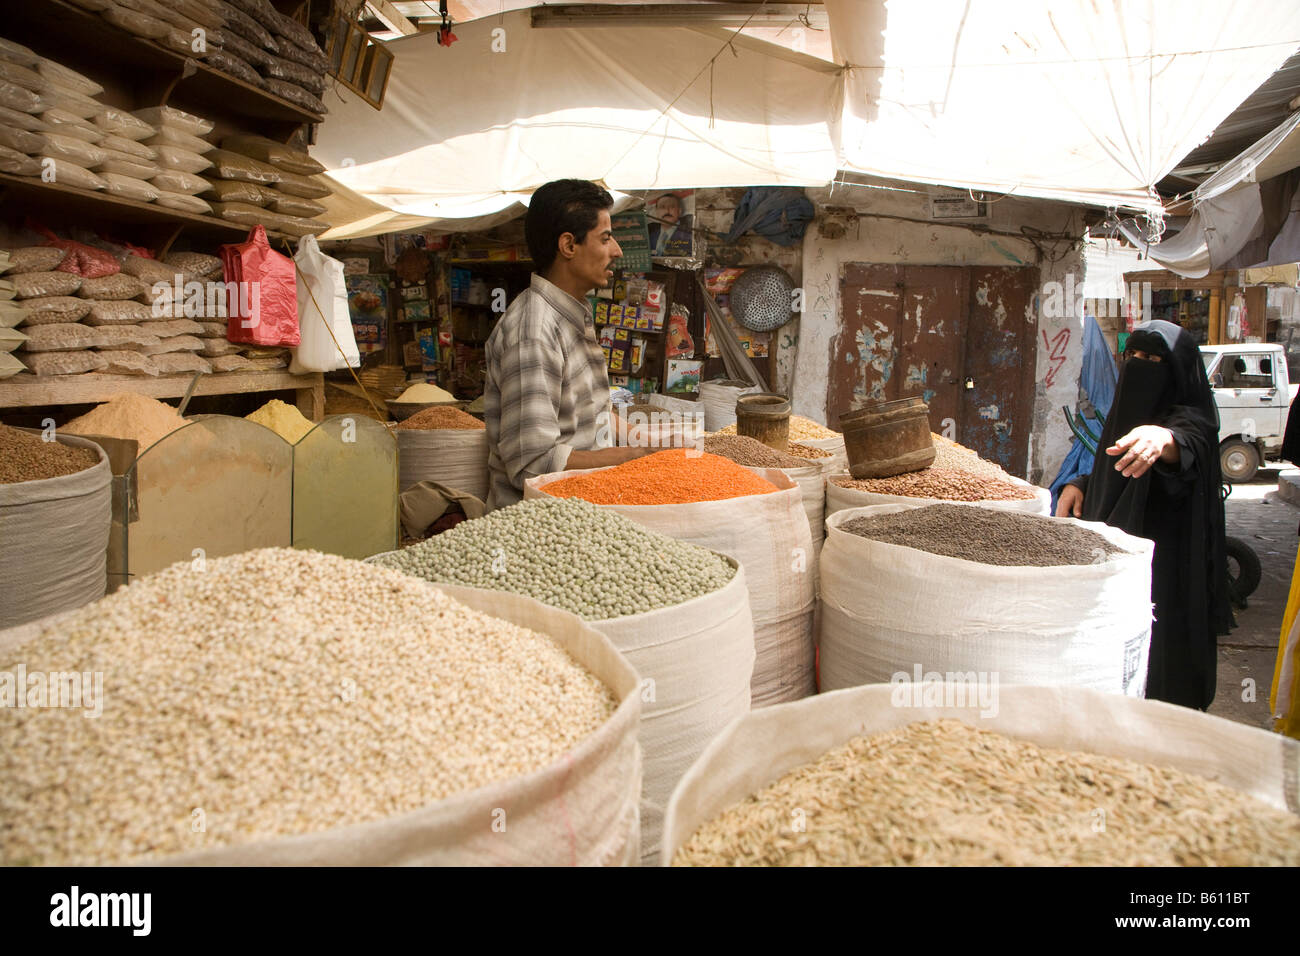 Souk, market for spices and legumes, San'a', Yemen, Middle East - Stock Image